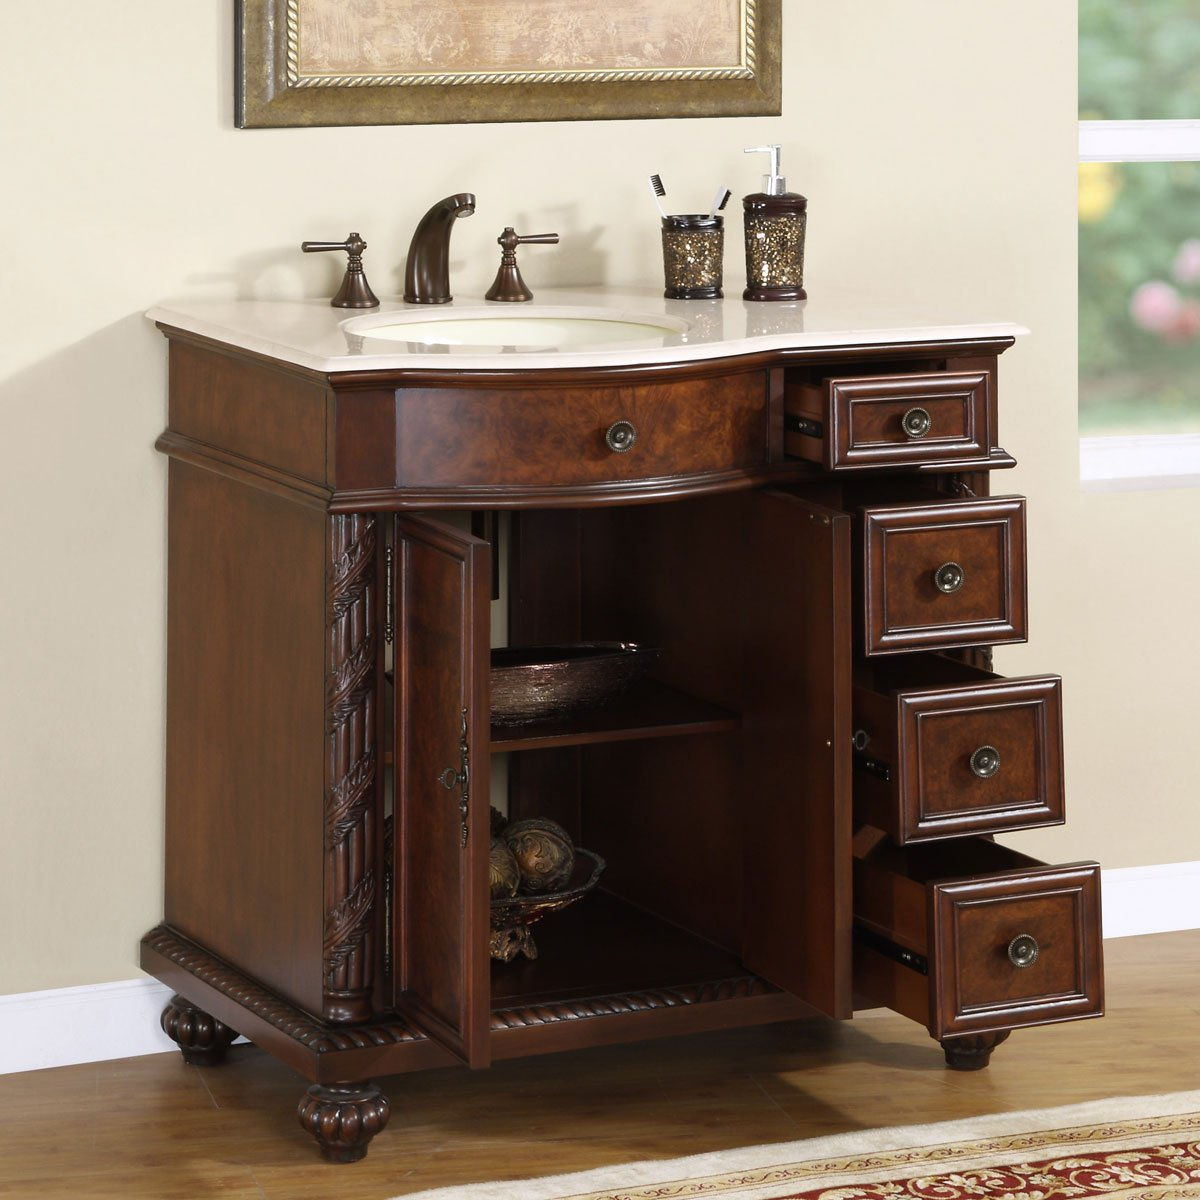 design bathroom magnificent vanity classic decor cabinets ideas hutch cabinet